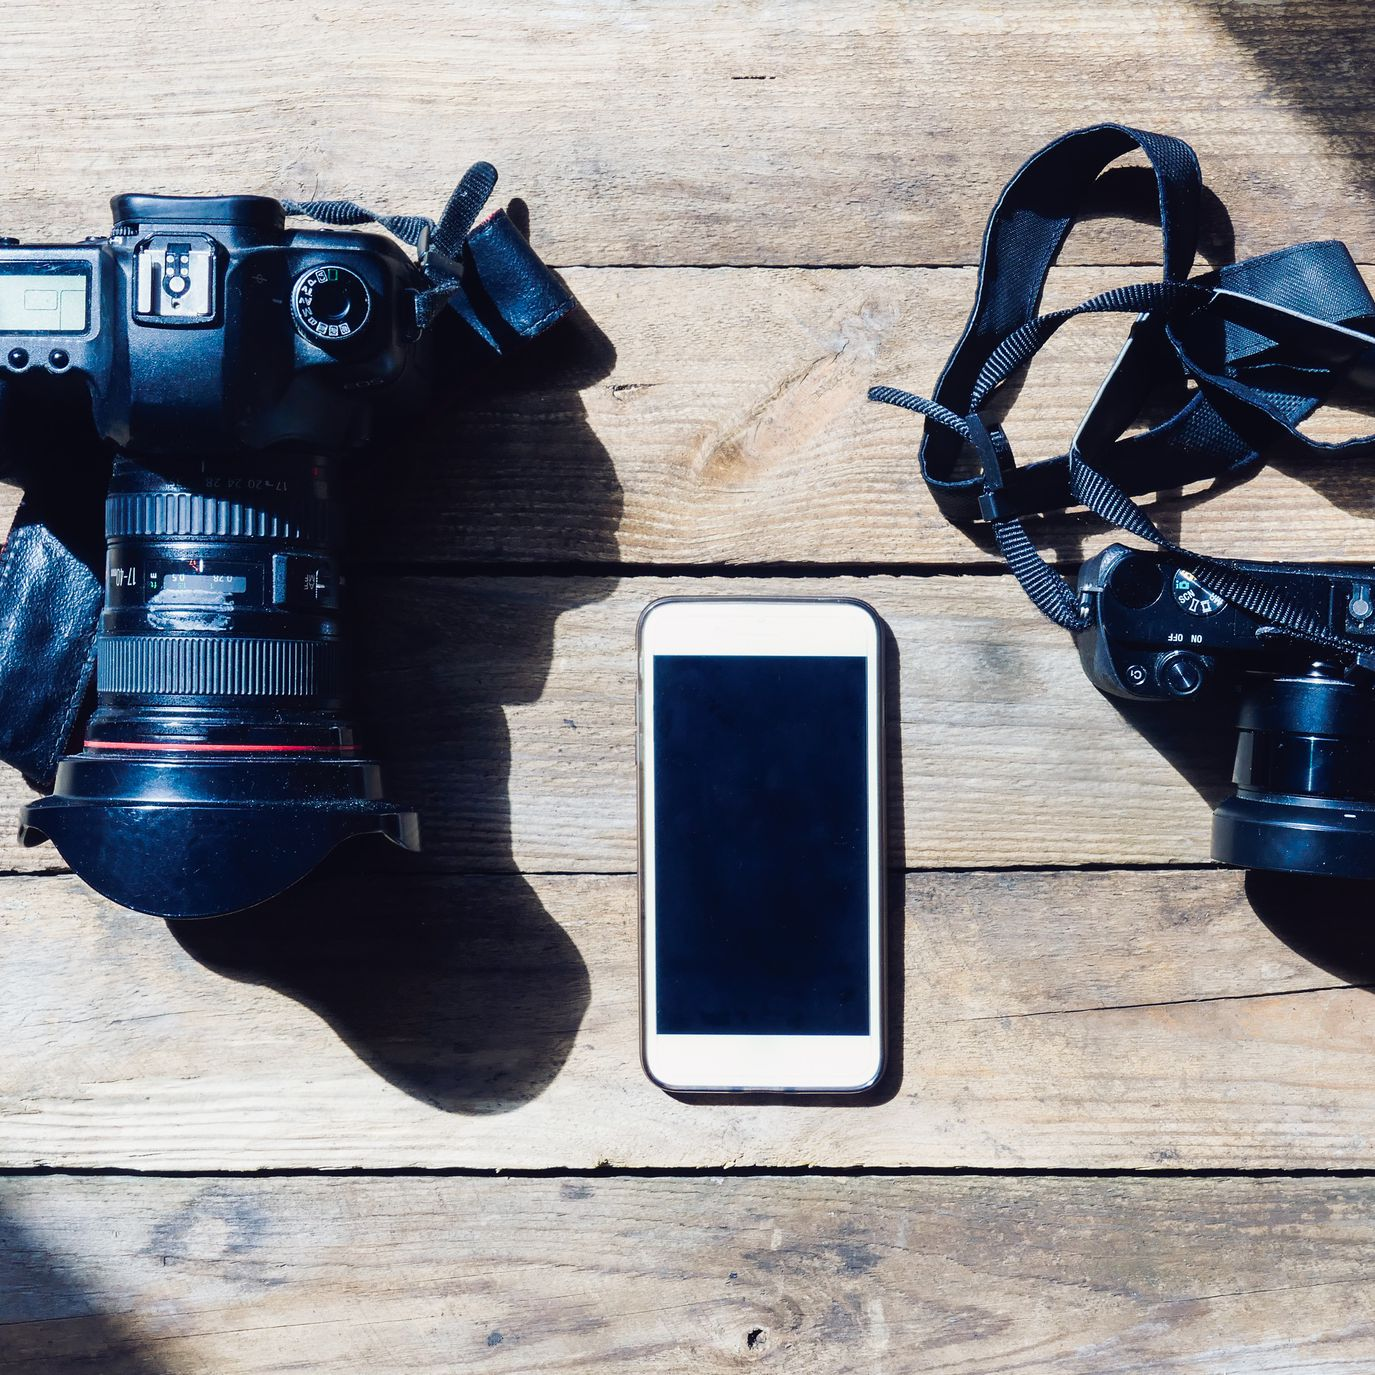 How to Use Manual Camera Settings on Your DSLR Camera